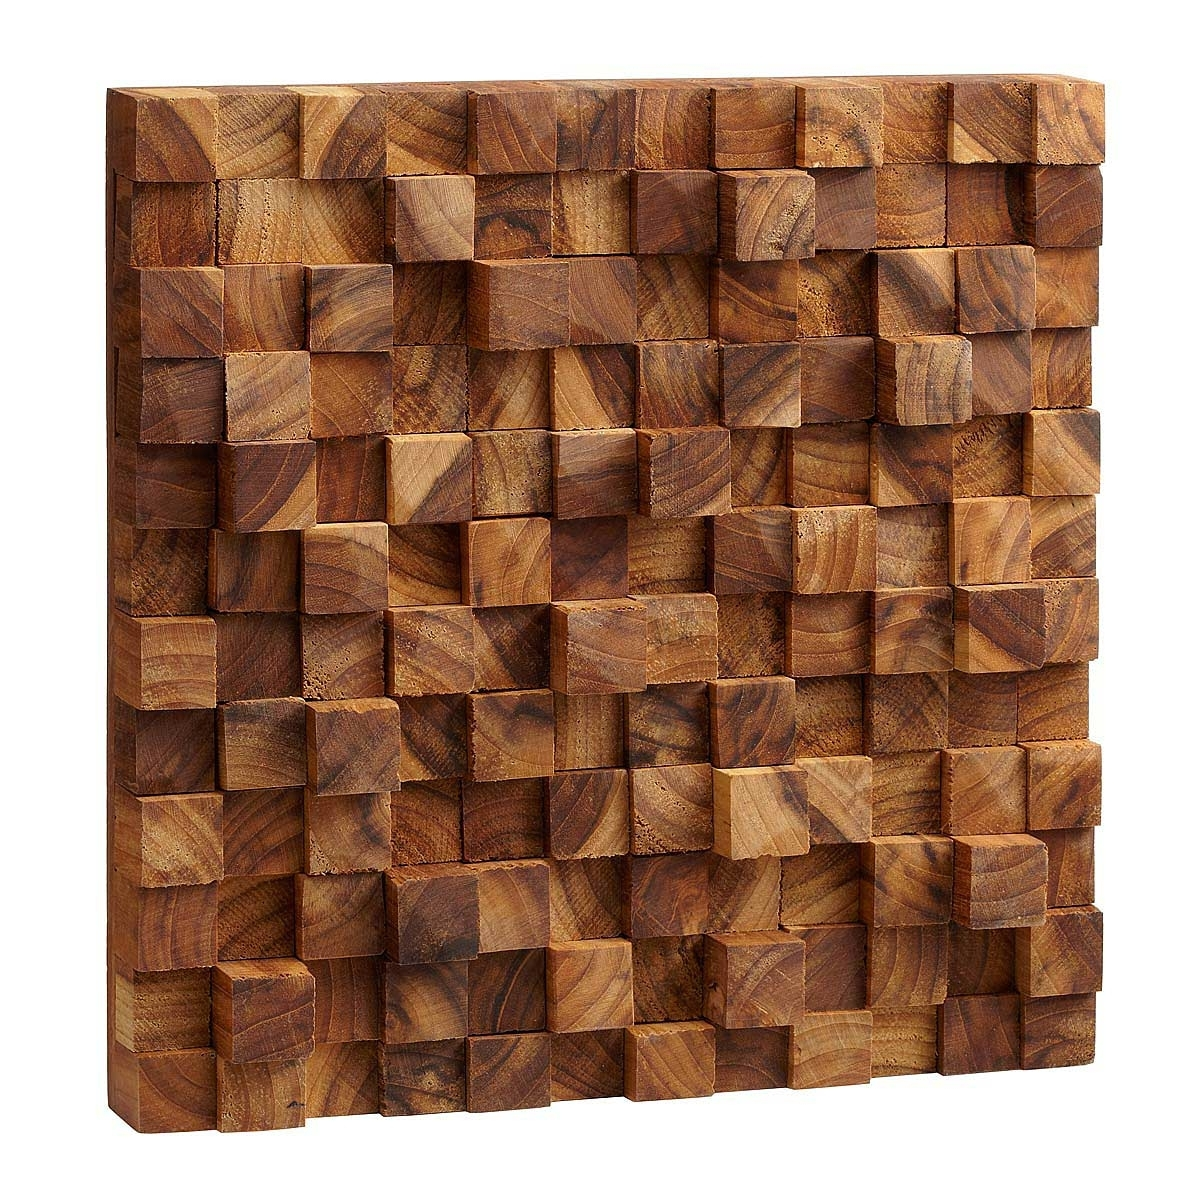 Uncommongoods With Well Known Wood 3D Wall Art (View 10 of 15)